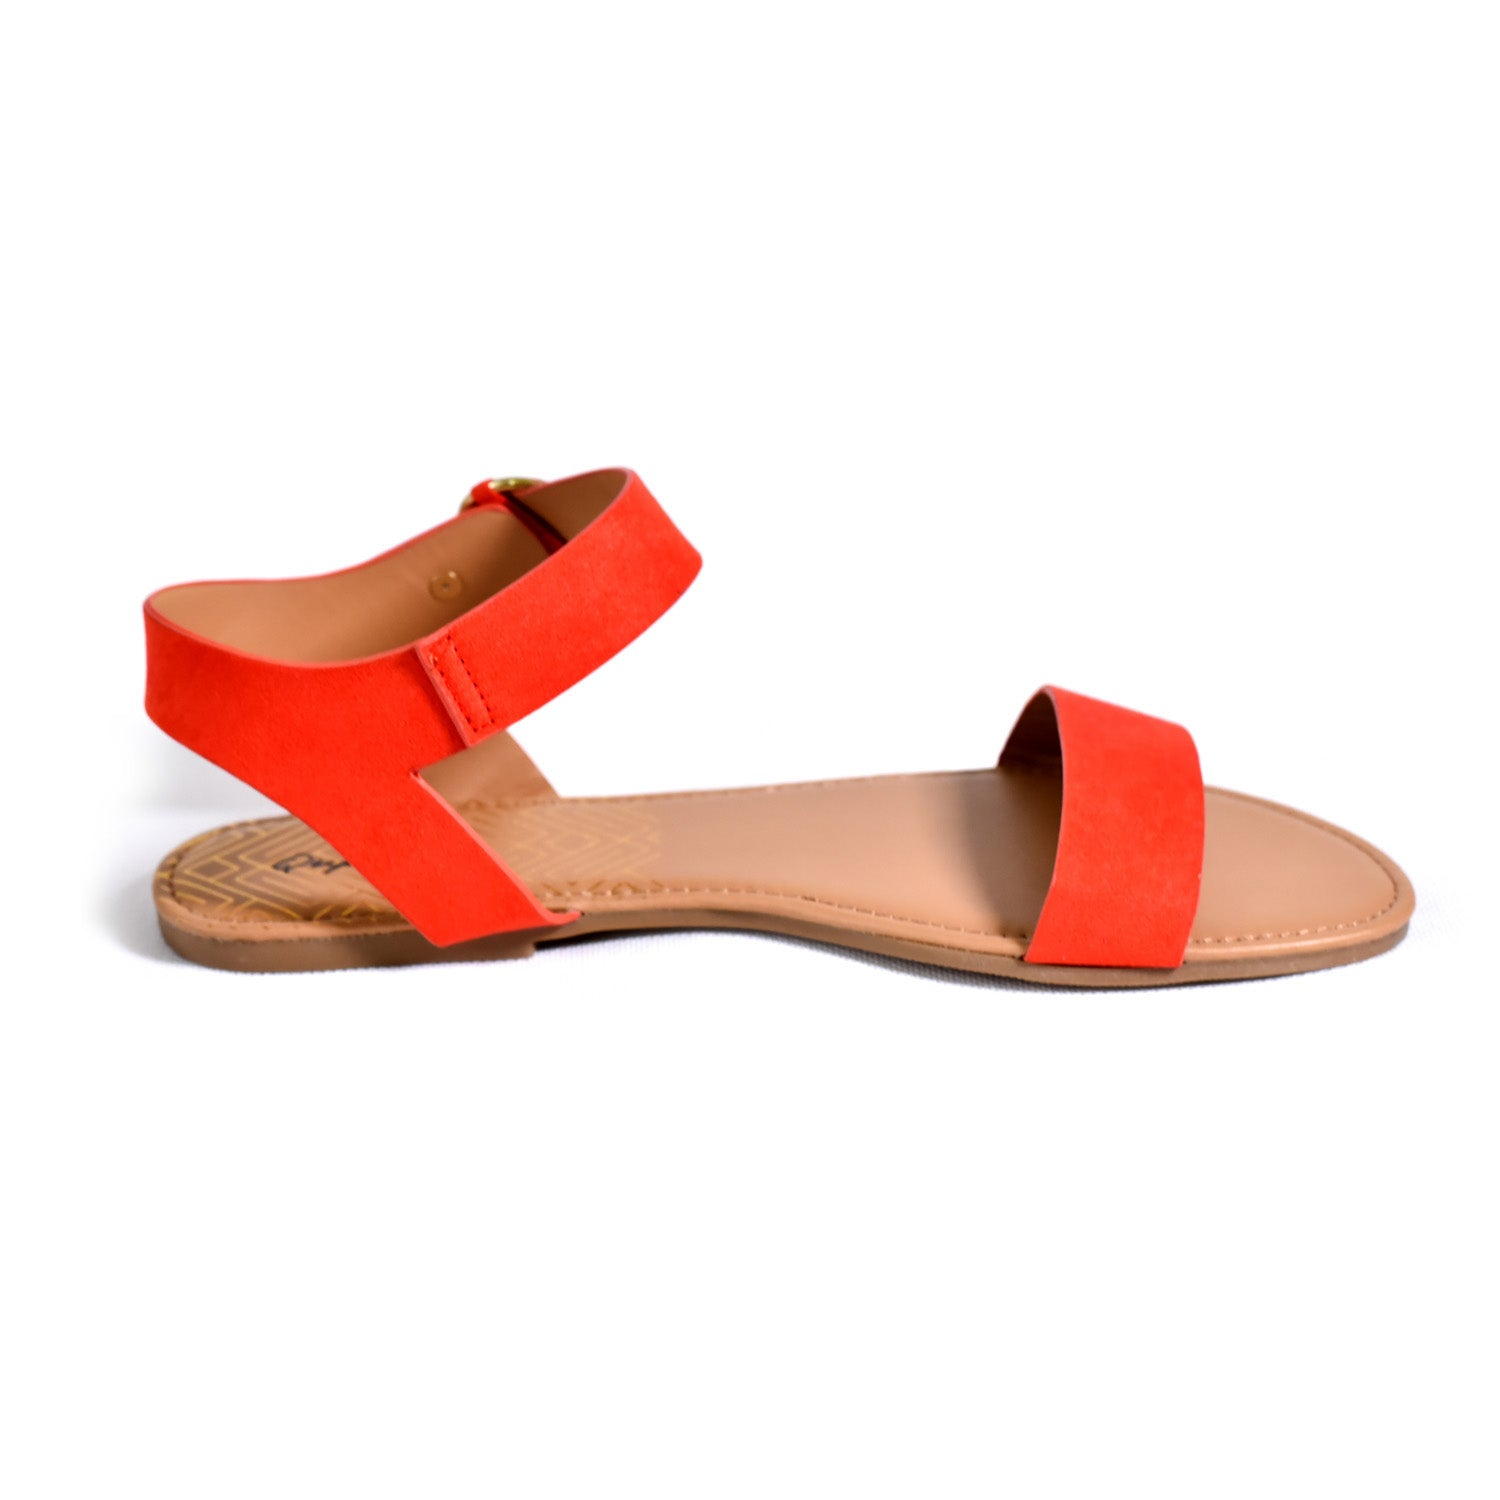 Flat Sandal with Simple design